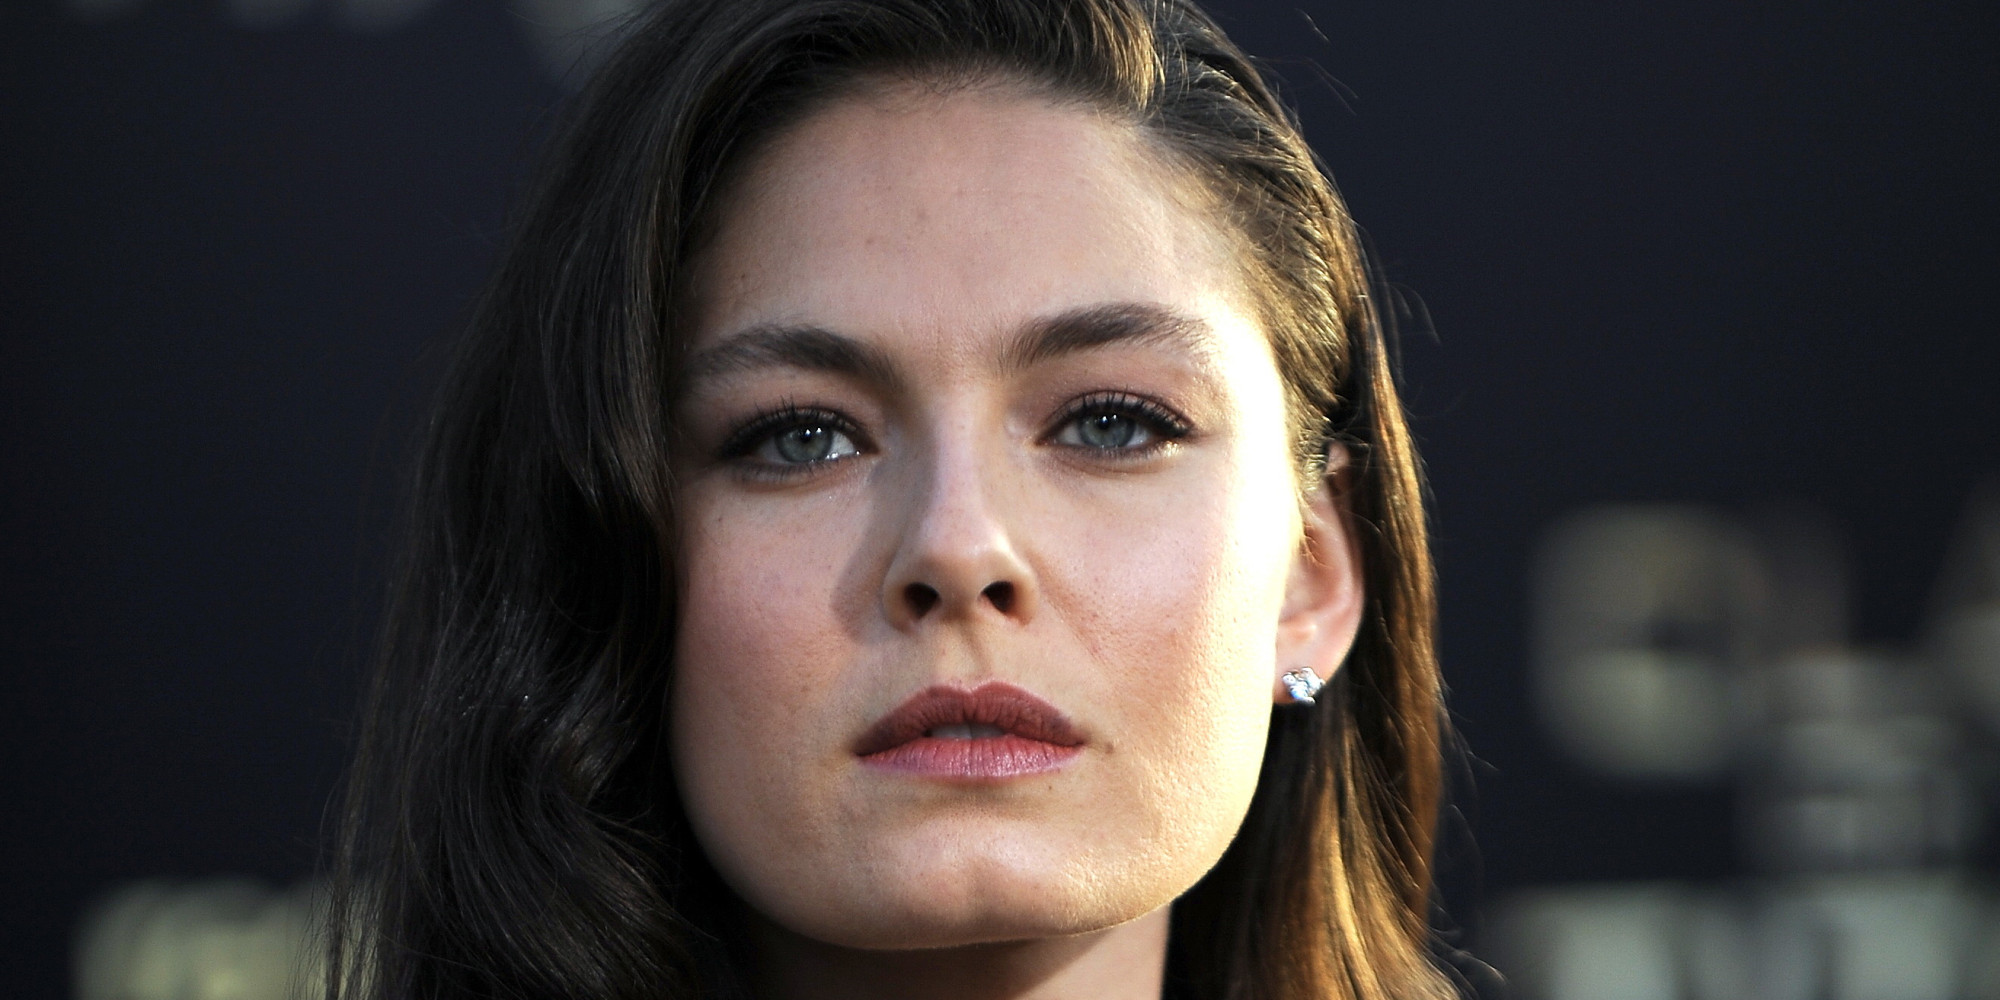 alexa davalos lindberghalexa davalos and luke kleintank, alexa davalos 2016, alexa davalos wiki, alexa davalos date, alexa davalos listal, alexa davalos vk, alexa davalos site, alexa davalos lindbergh, alexa davalos without makeup, alexa davalos and vin diesel, alexa davalos greek, alexa davalos фото, alexa davalos instagram, alexa davalos wikipedia, alexa davalos man in the high castle, alexa davalos wdw, alexa davalos wallpapers hd